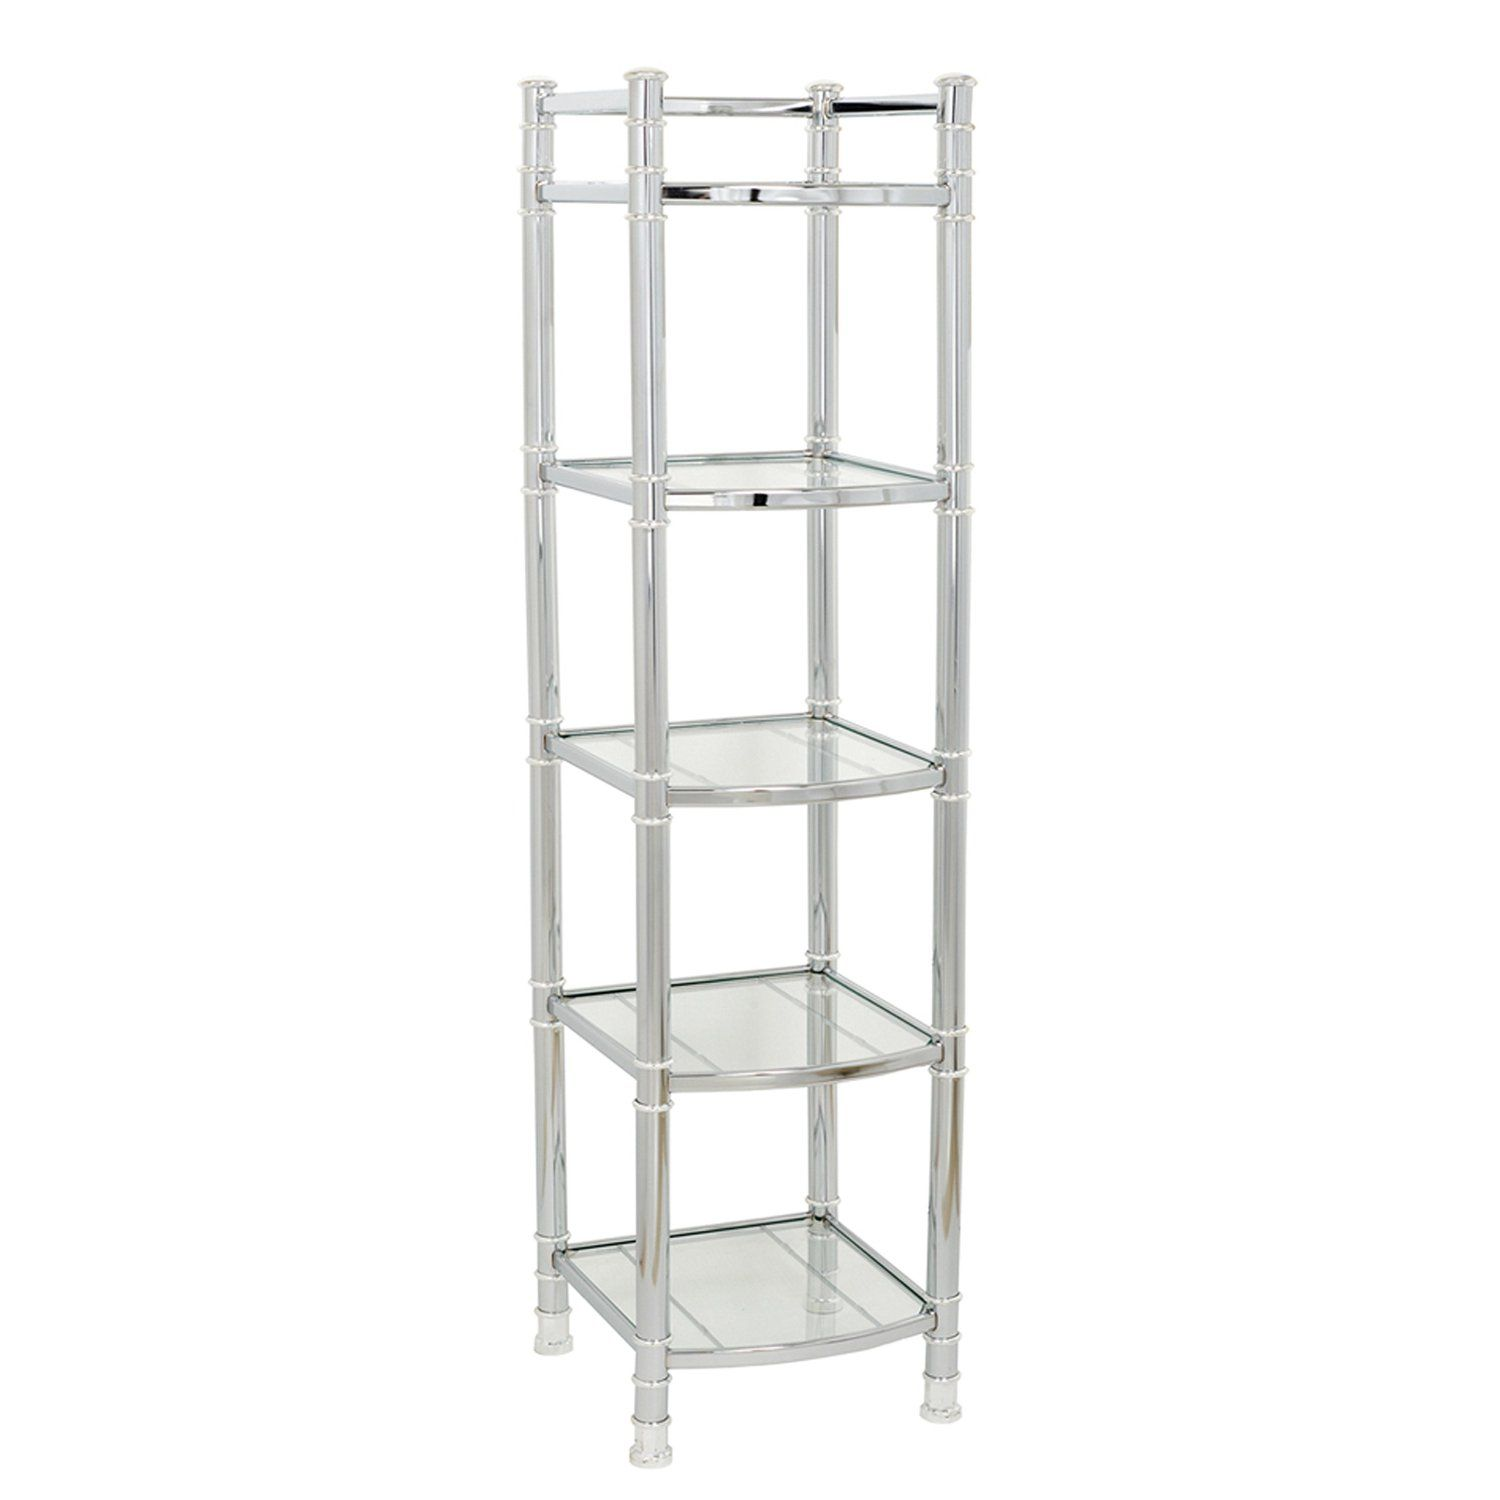 Zenna Home 9058ss 5 Tier Bathroom Shelf Linen Tower Chrome Glass Home Kitchen